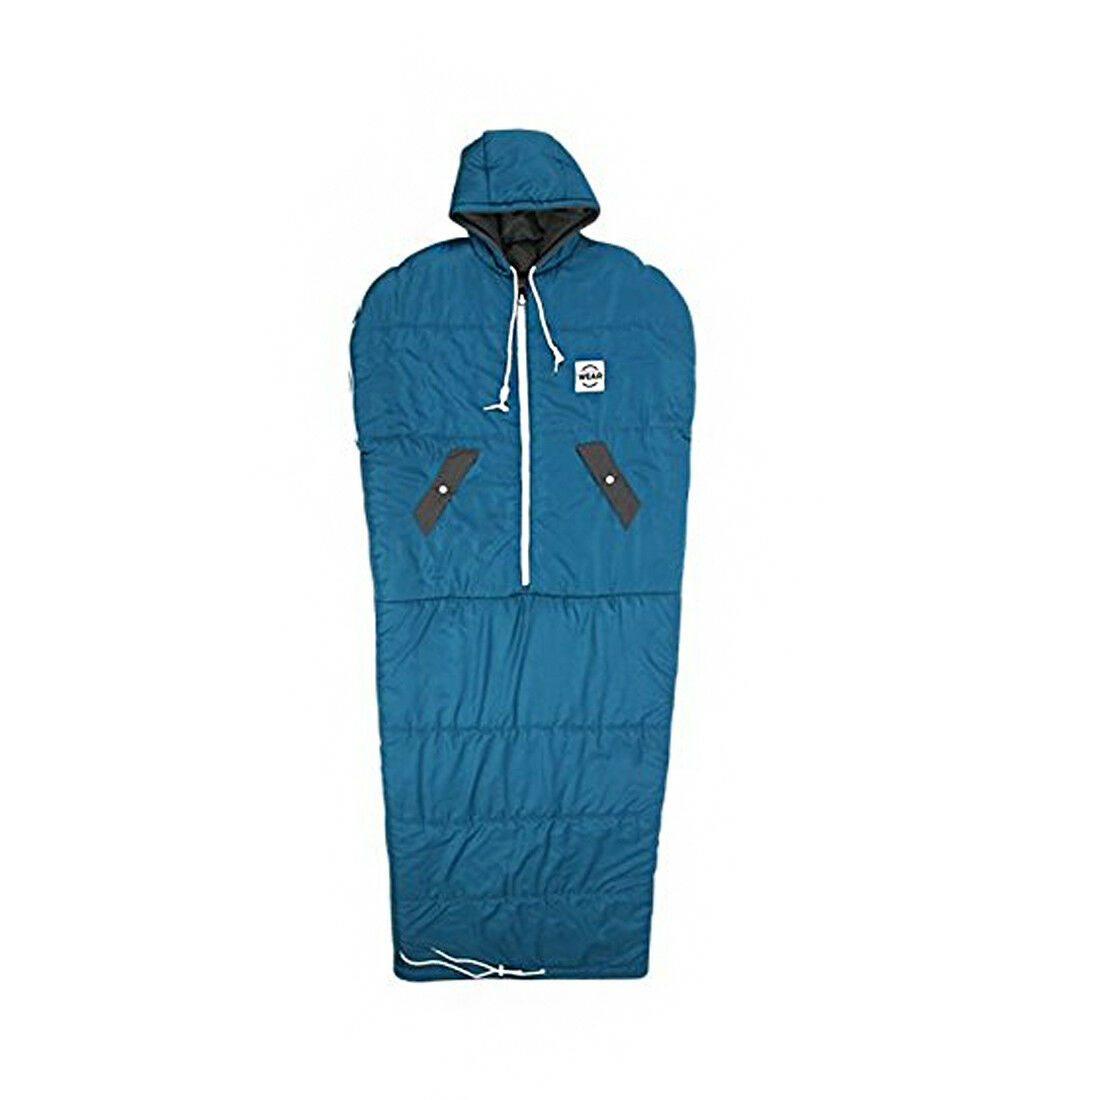 VINSONMASSIF Wearable Sleeping Bag for Camping Hiking Outdoors  Turkey blu